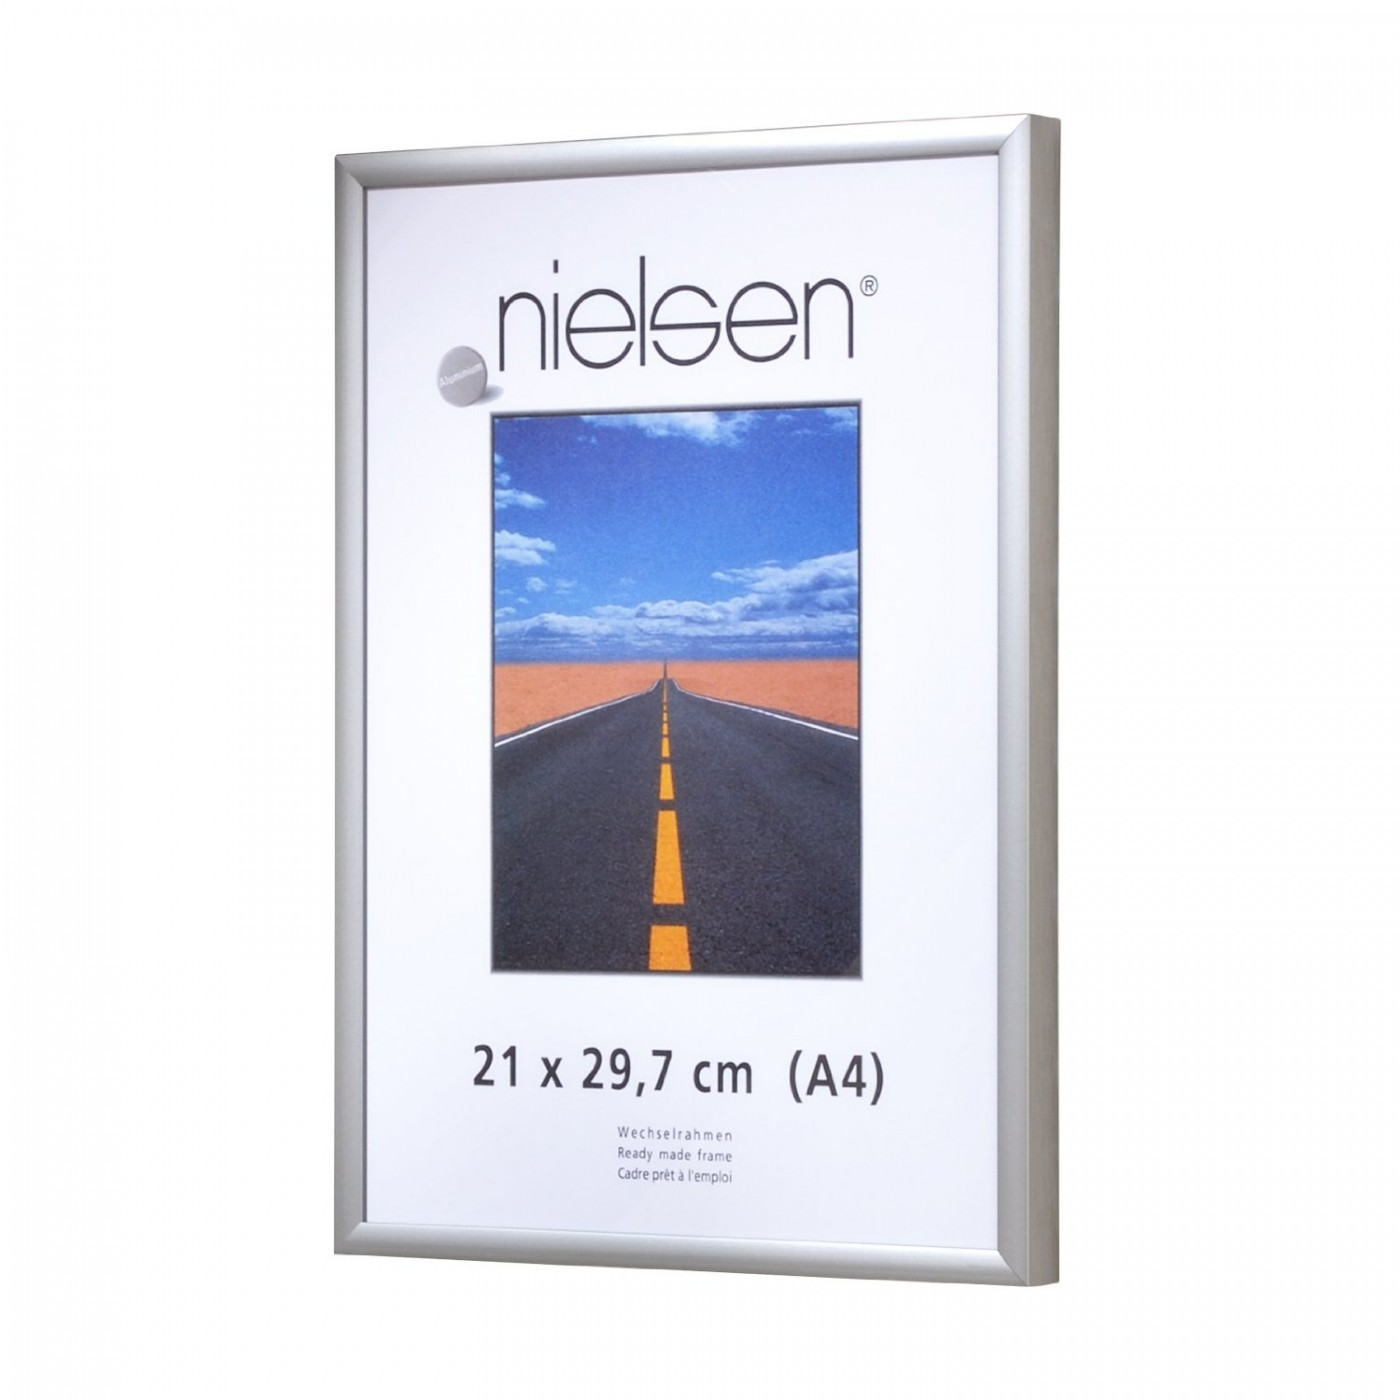 Nielsen pearl perspex 59x84 cm a1 matt silver picture frame nielsen pearl perspex 59x84 cm a1 matt silver picture frame jeuxipadfo Image collections